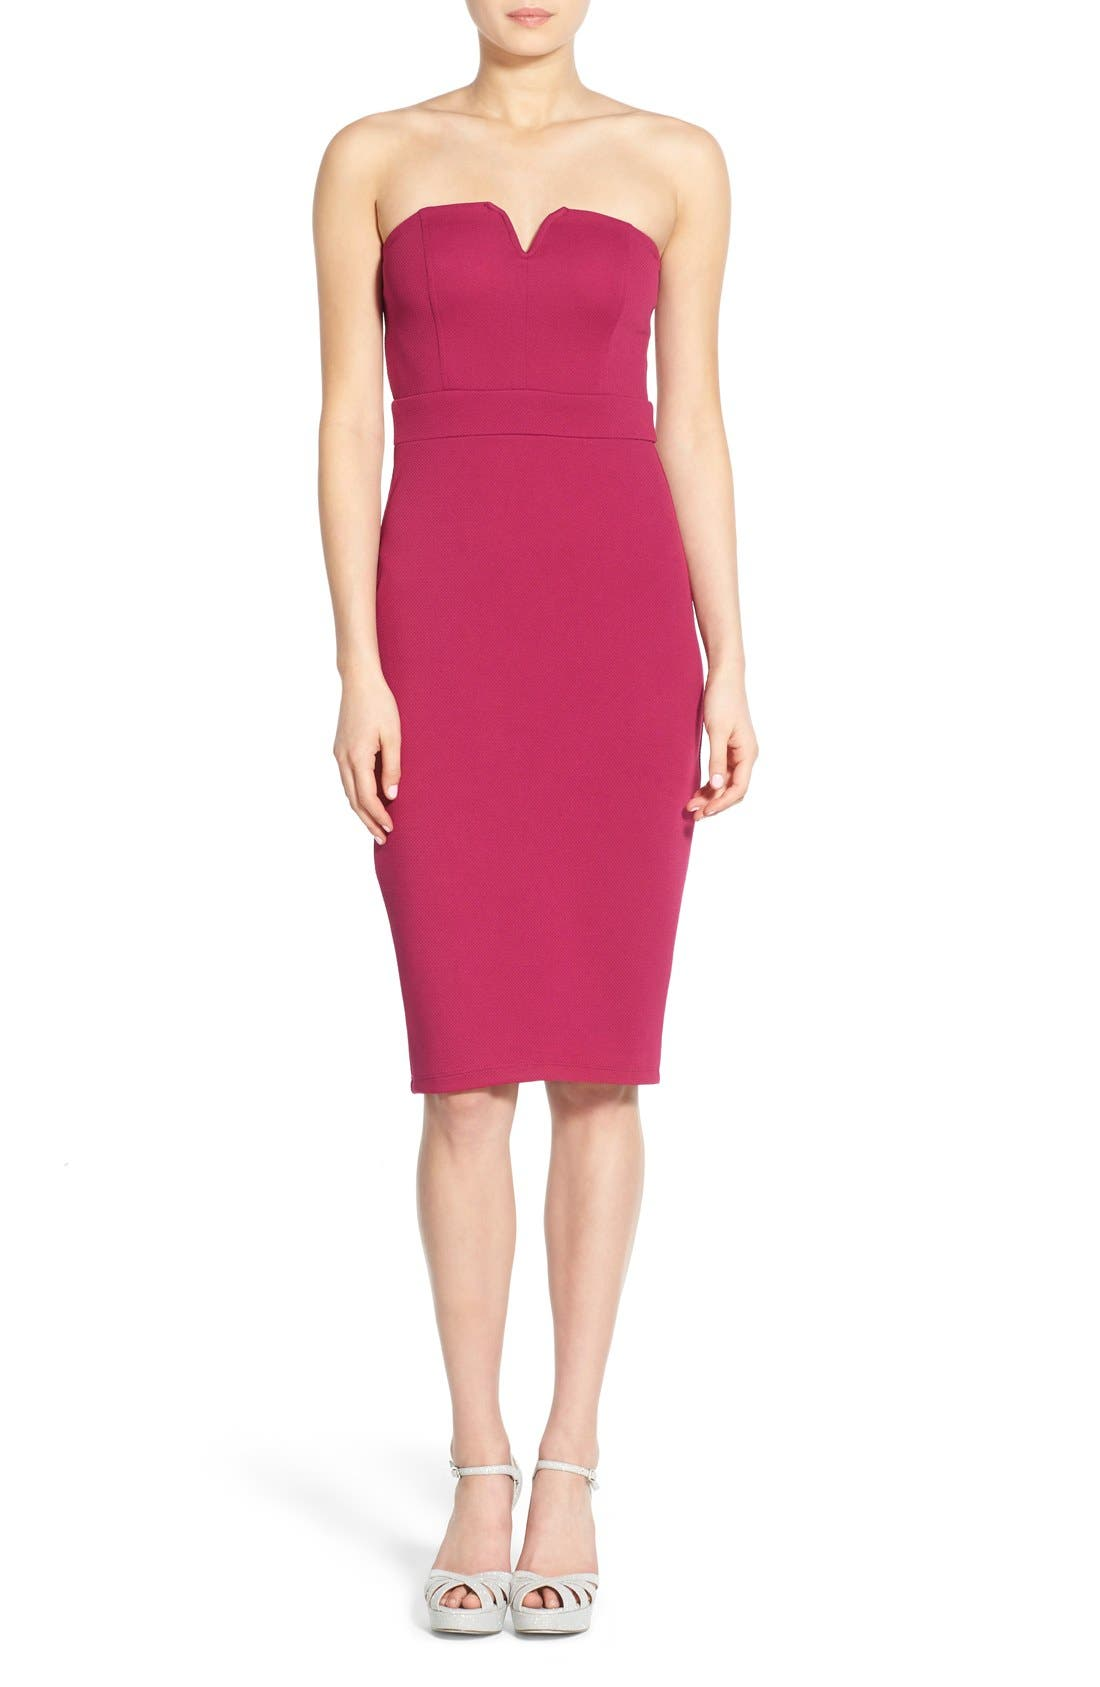 Alternate Image 1 Selected - Speechless Strapless Sheath Dress